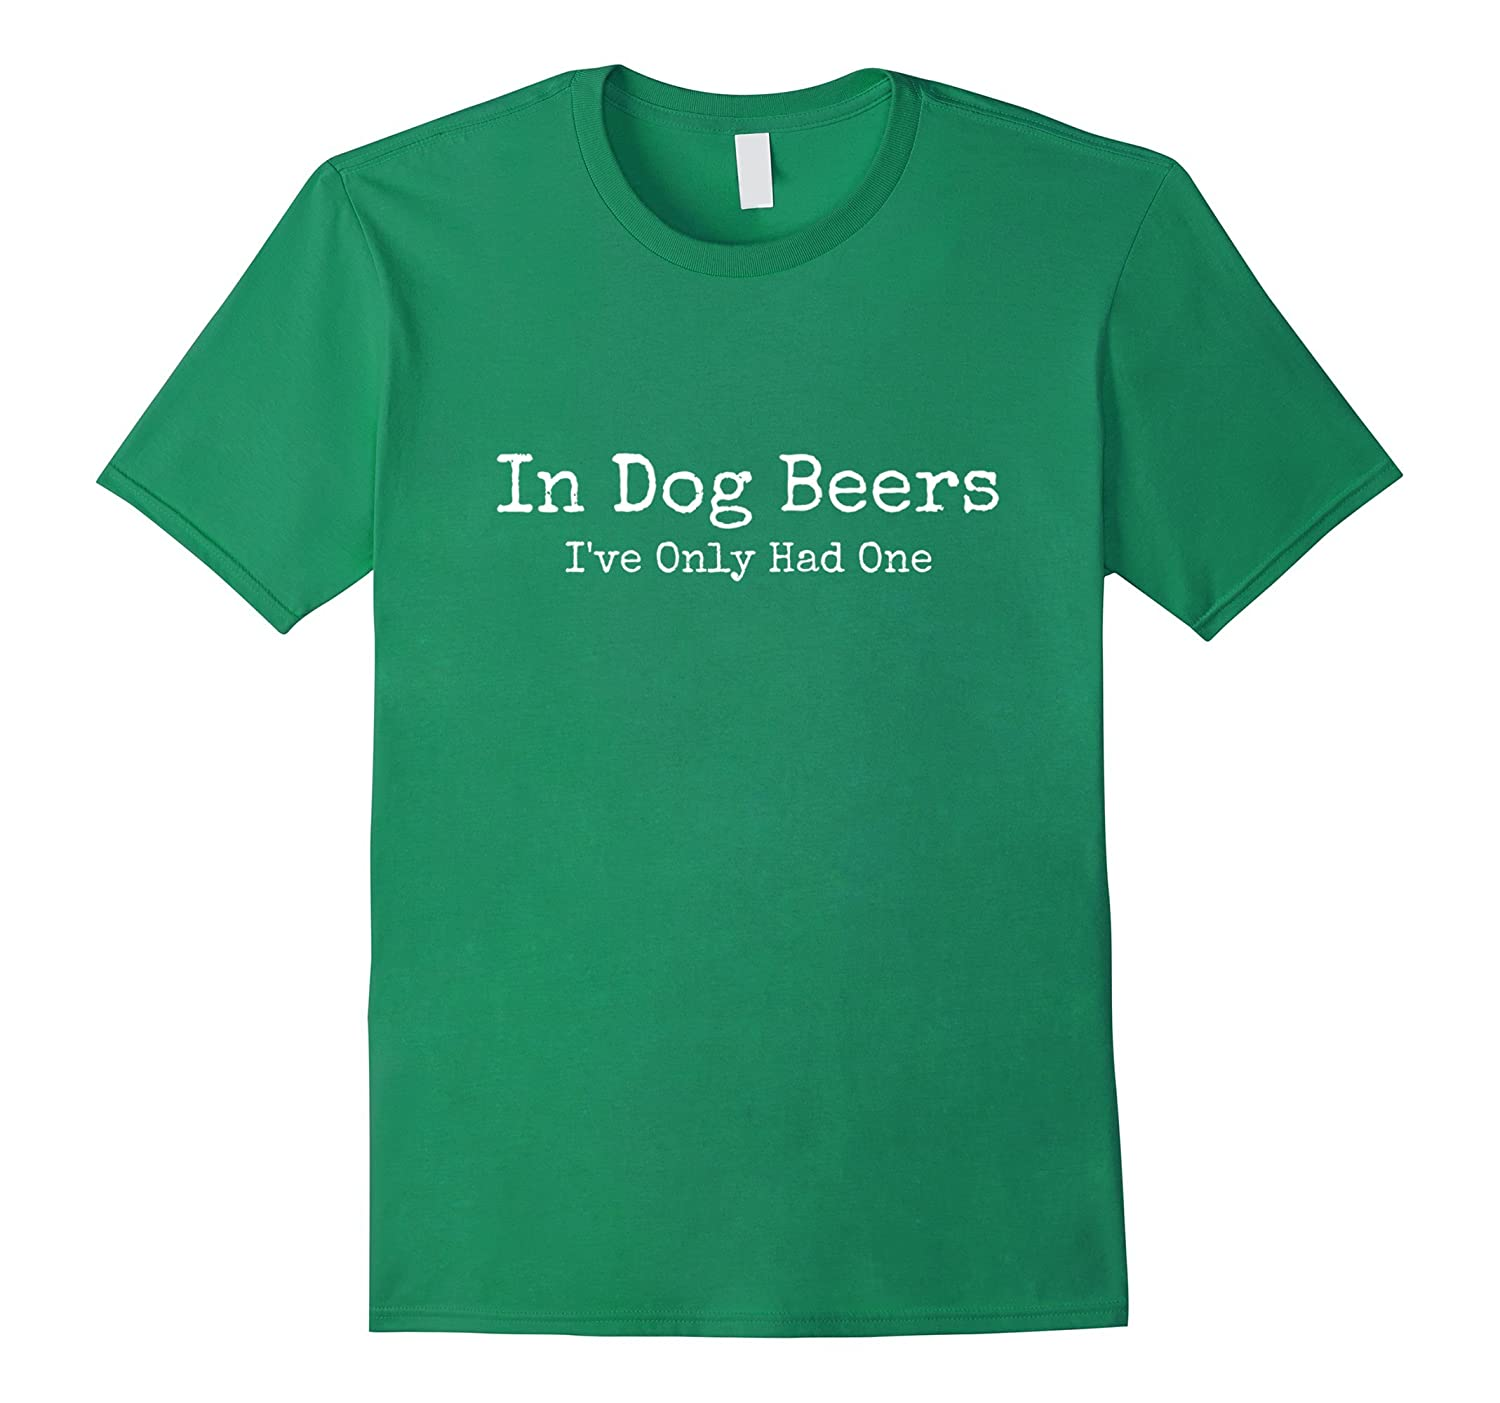 Beer Fans - In Dog Beers Ive Only Had One - Funny Drinking-Vaci